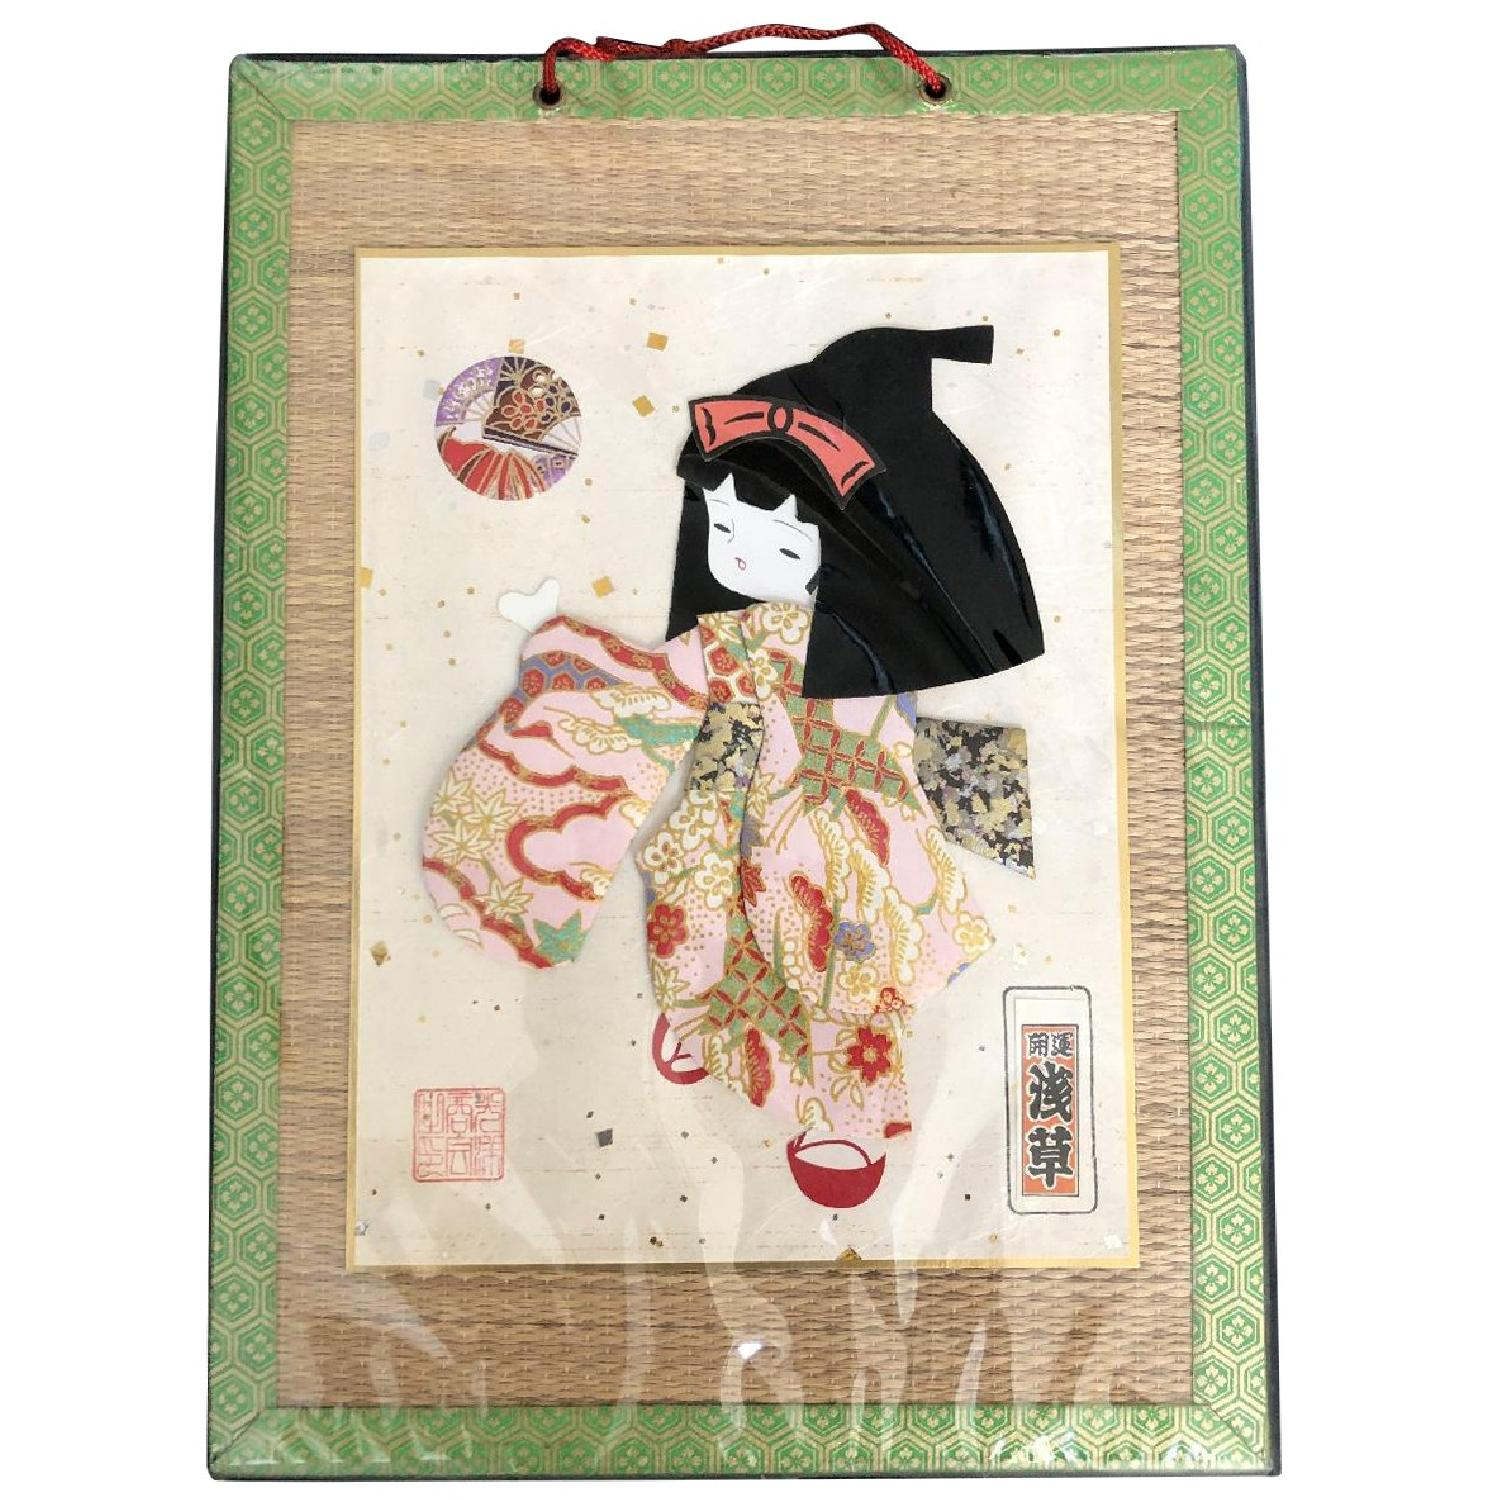 Signed Japanese Geisha Girl Fabric Kimono Washi Paper Doll